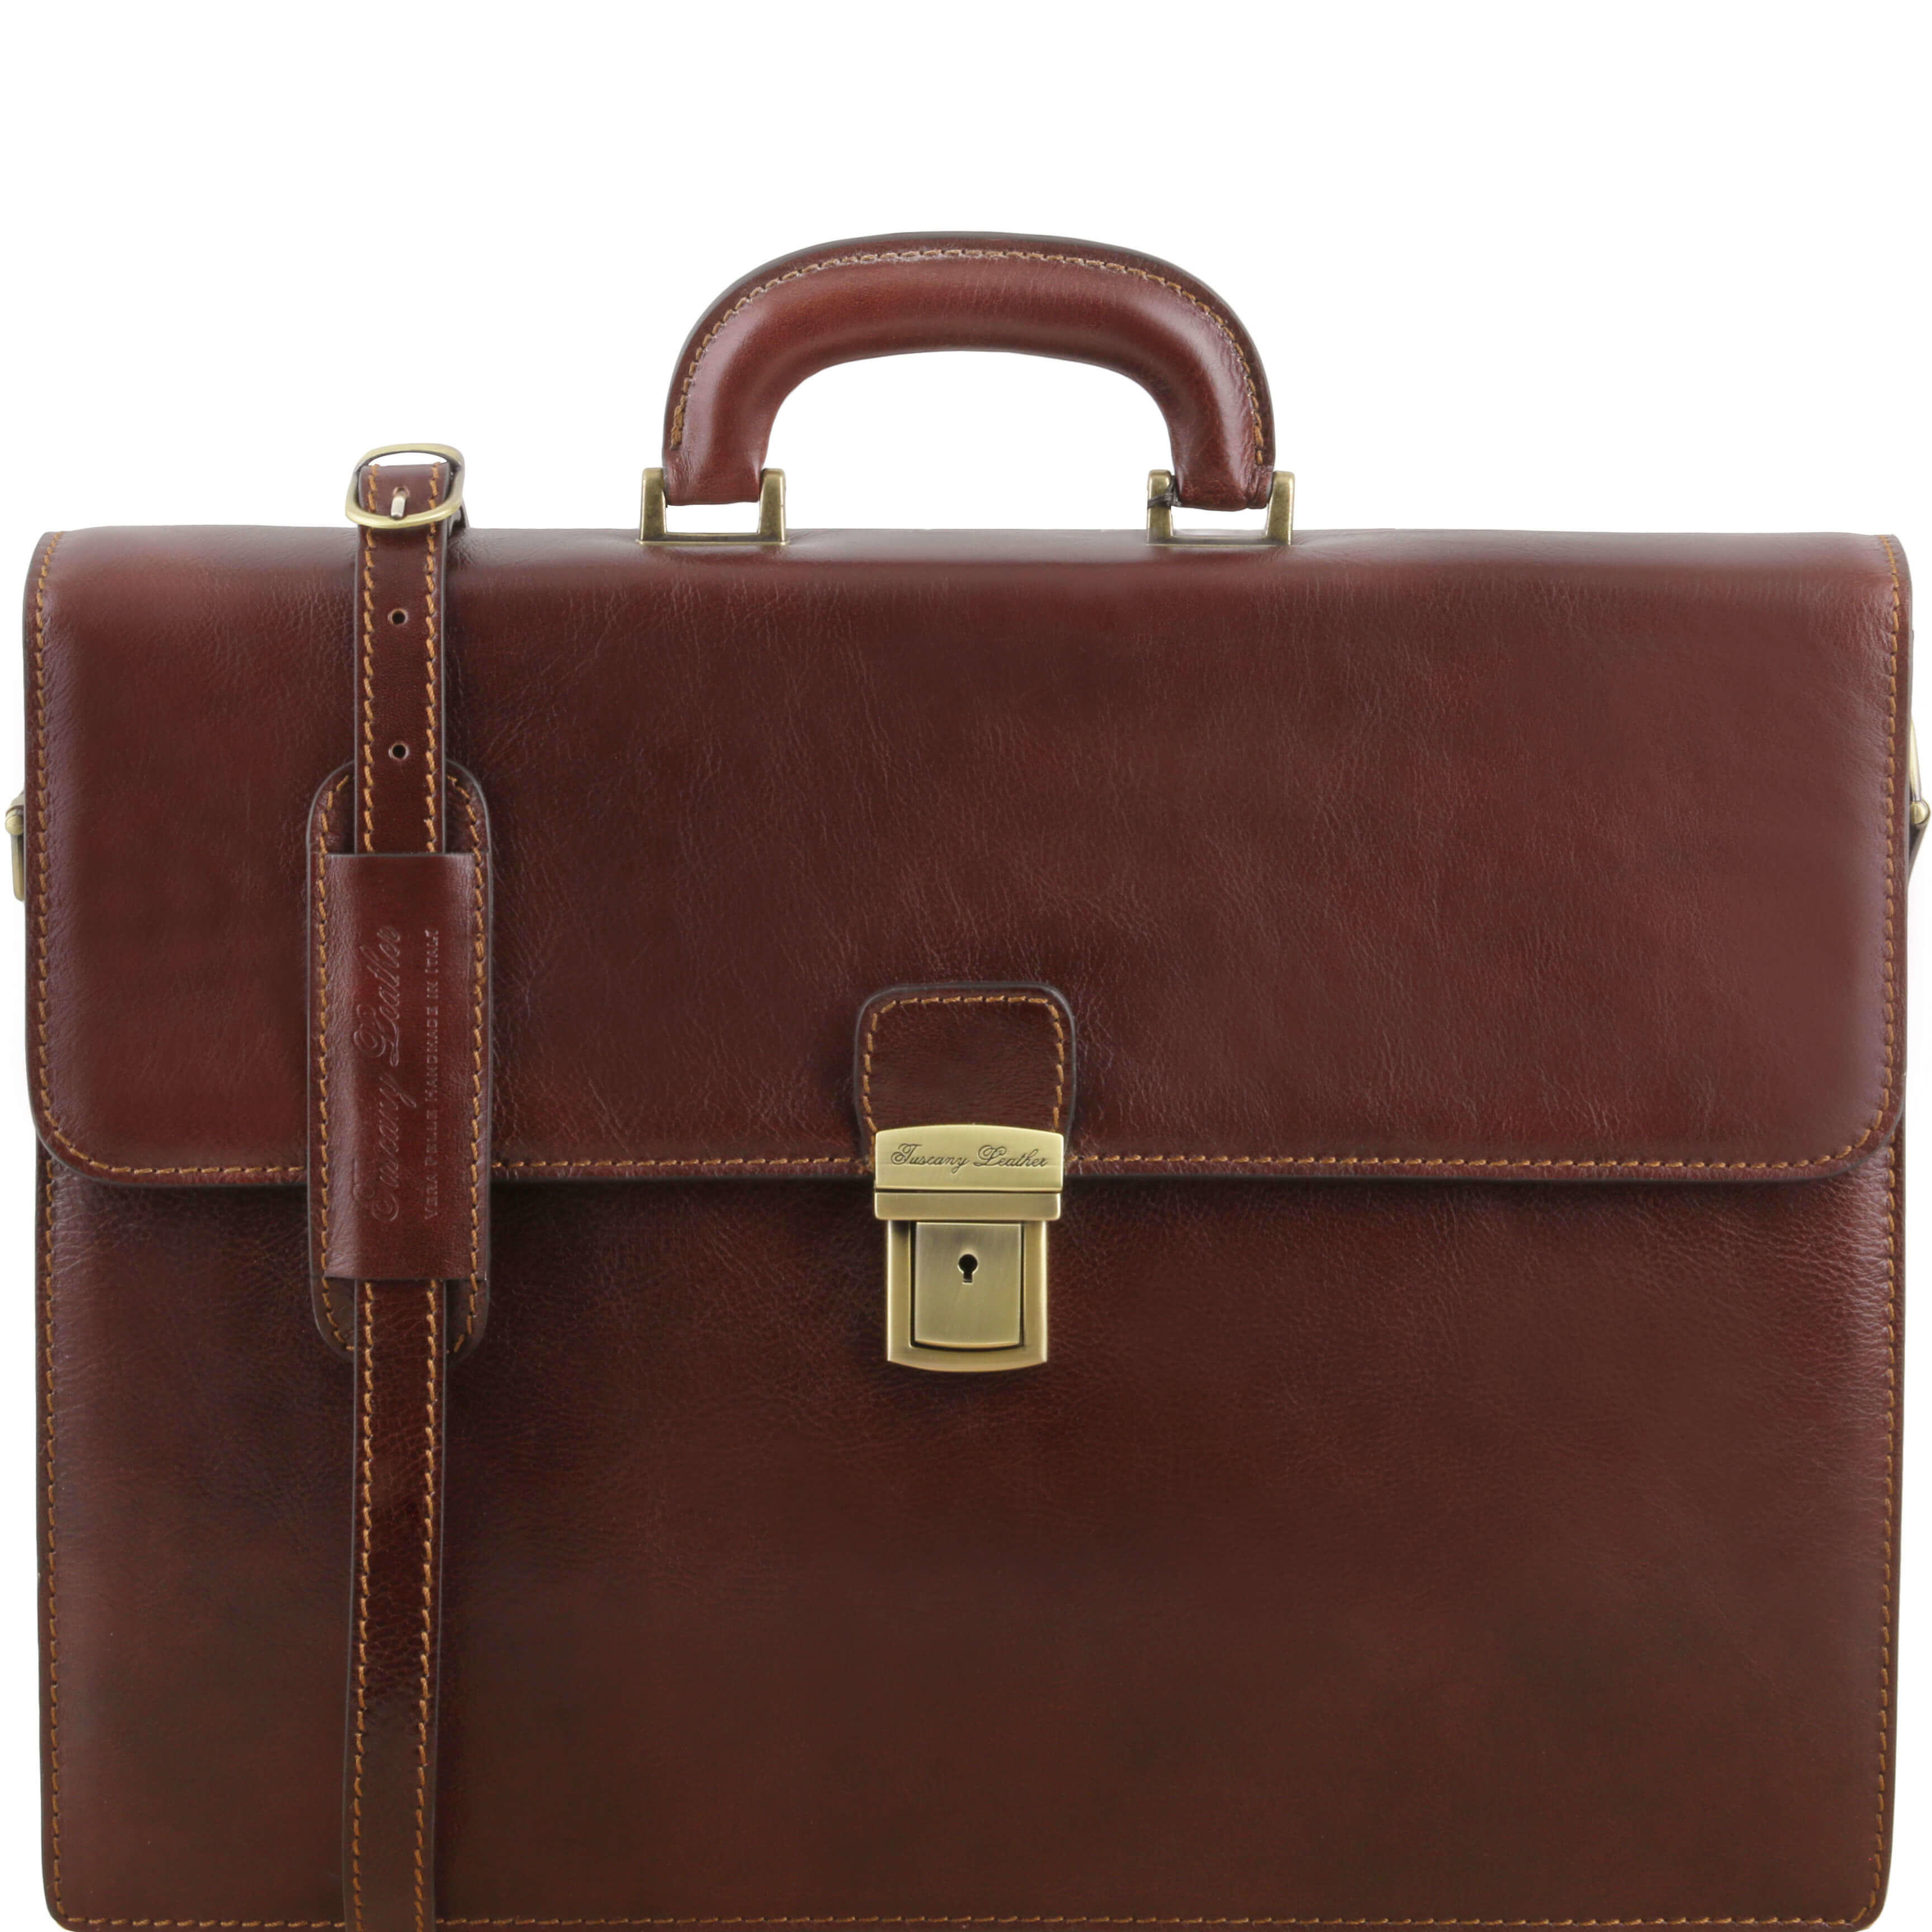 "TL141350 NEW Parma 2 Compartments Leather 15""Laptop-Briefcase-Bag & Shoulder Strap Brown"